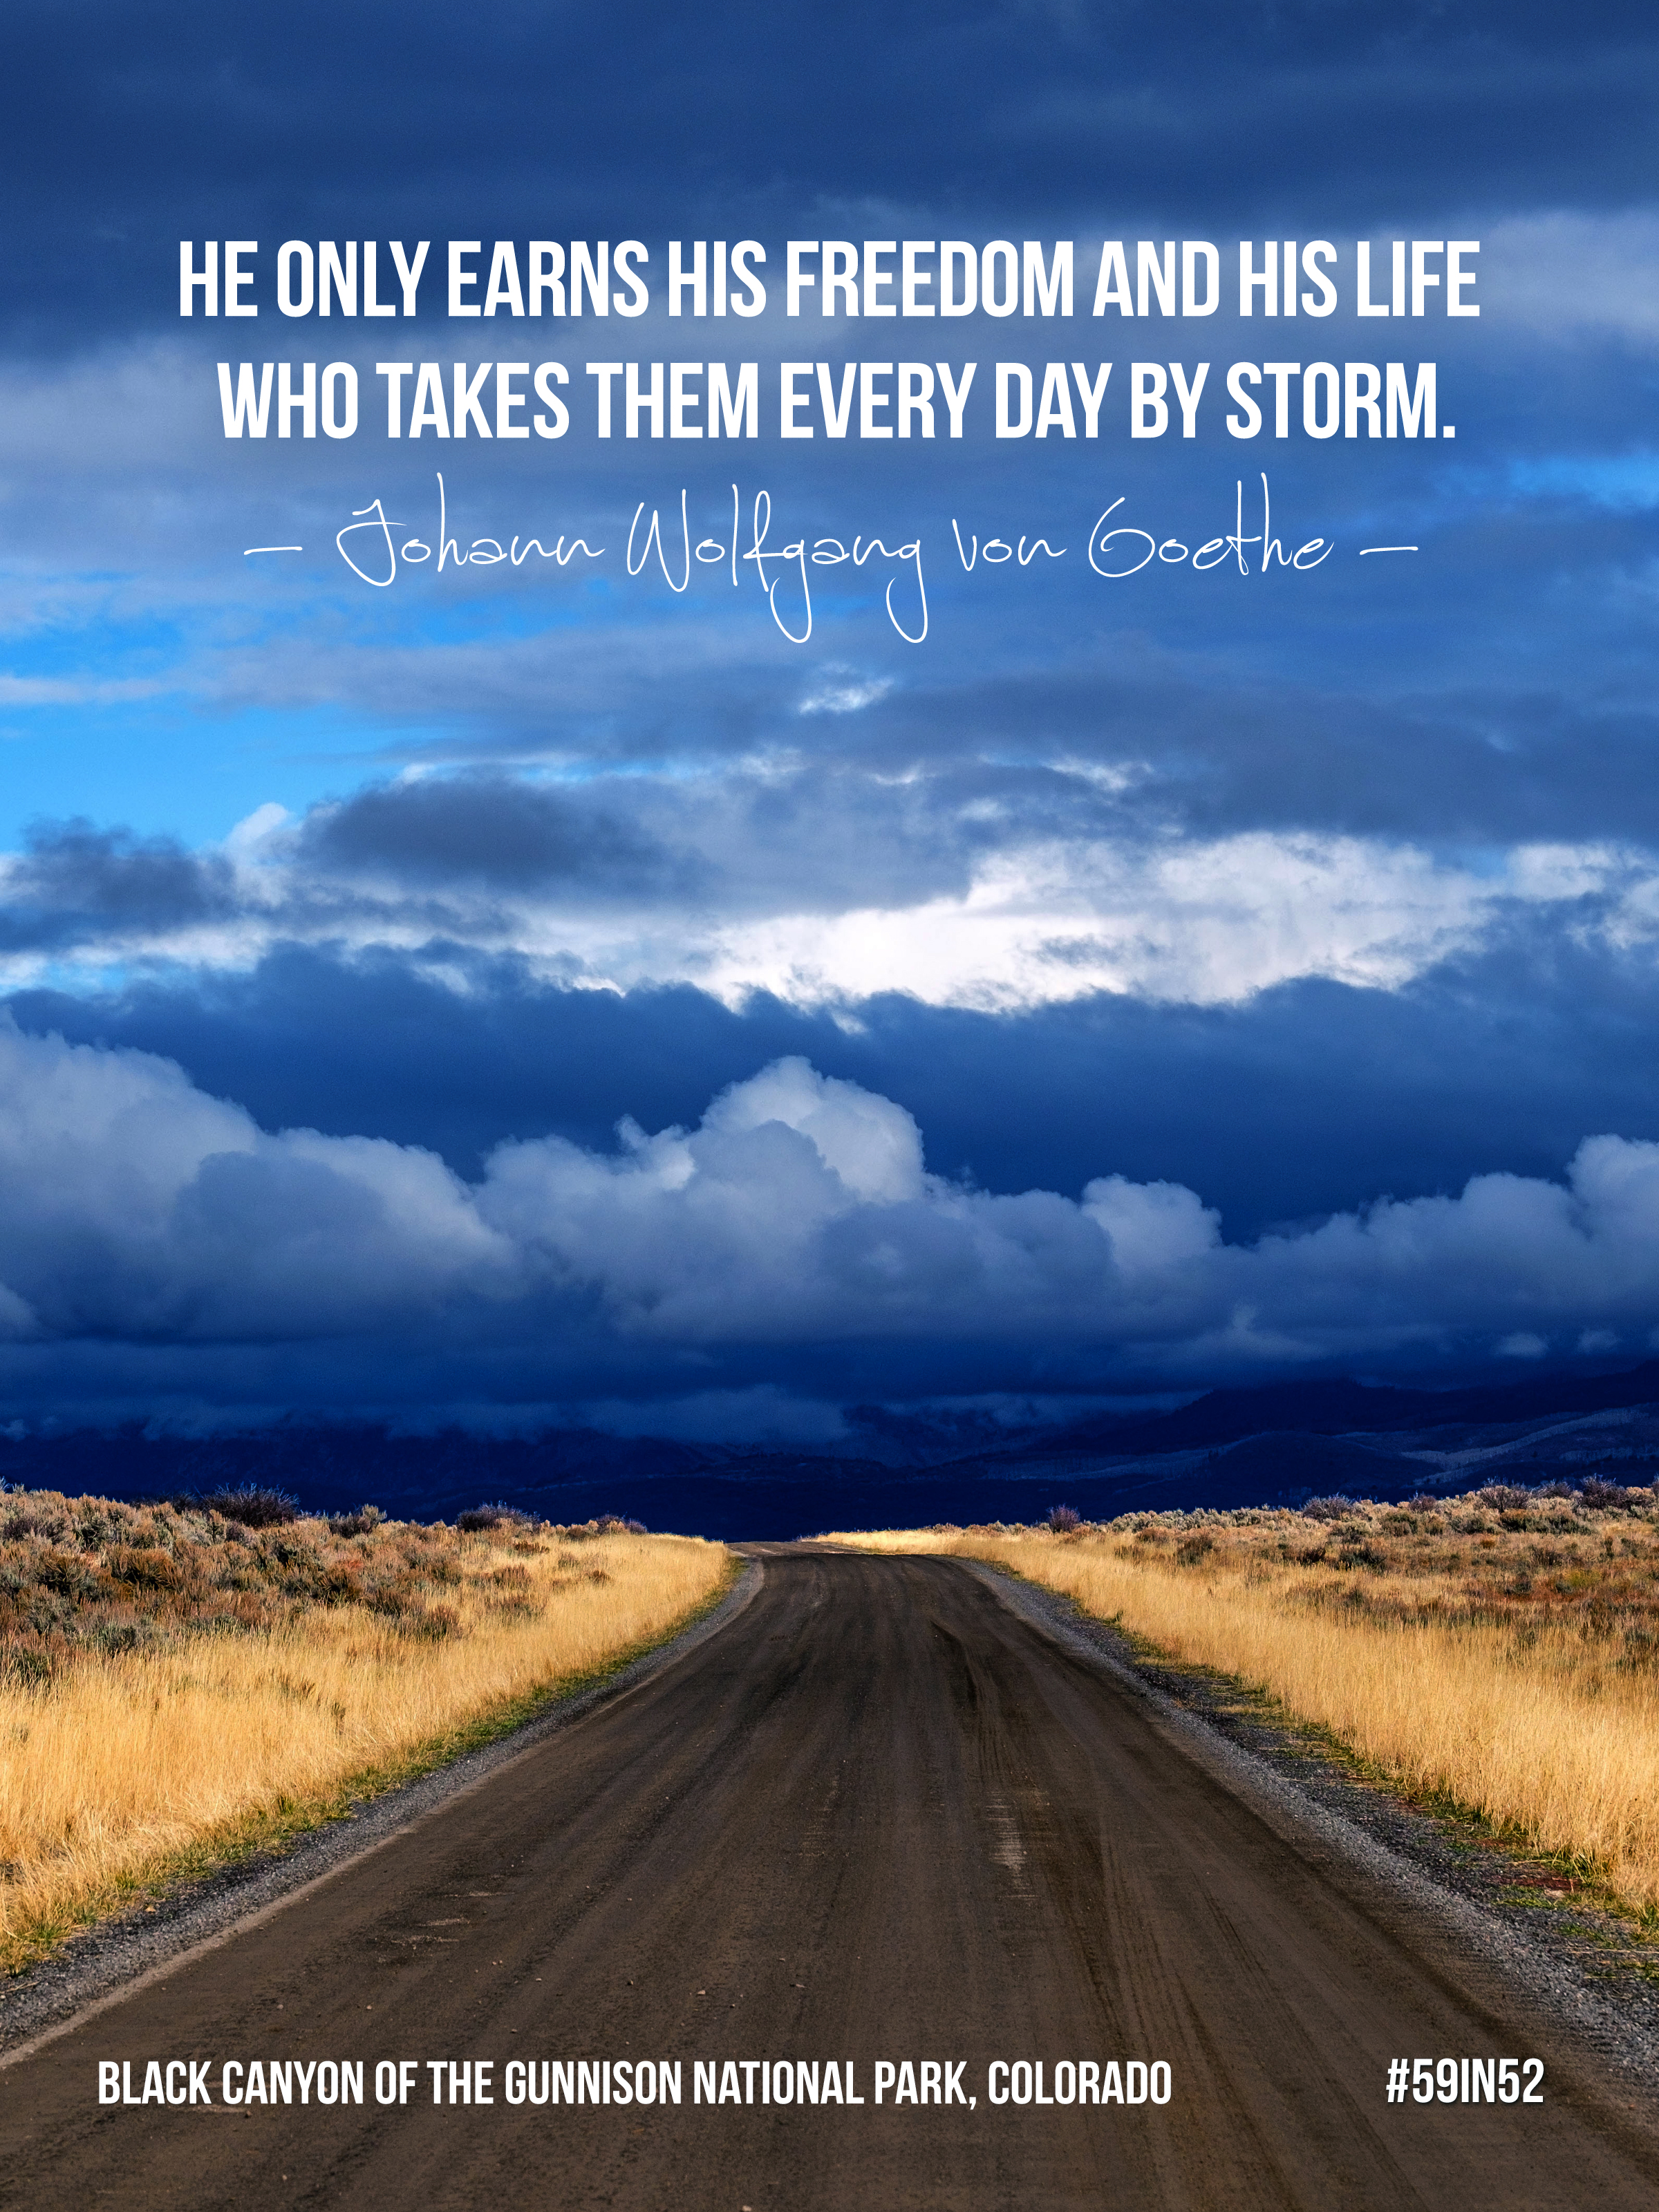 """He only earns his freedom and his life who takes them every day by storm."" - Wolfgang von Goethe"